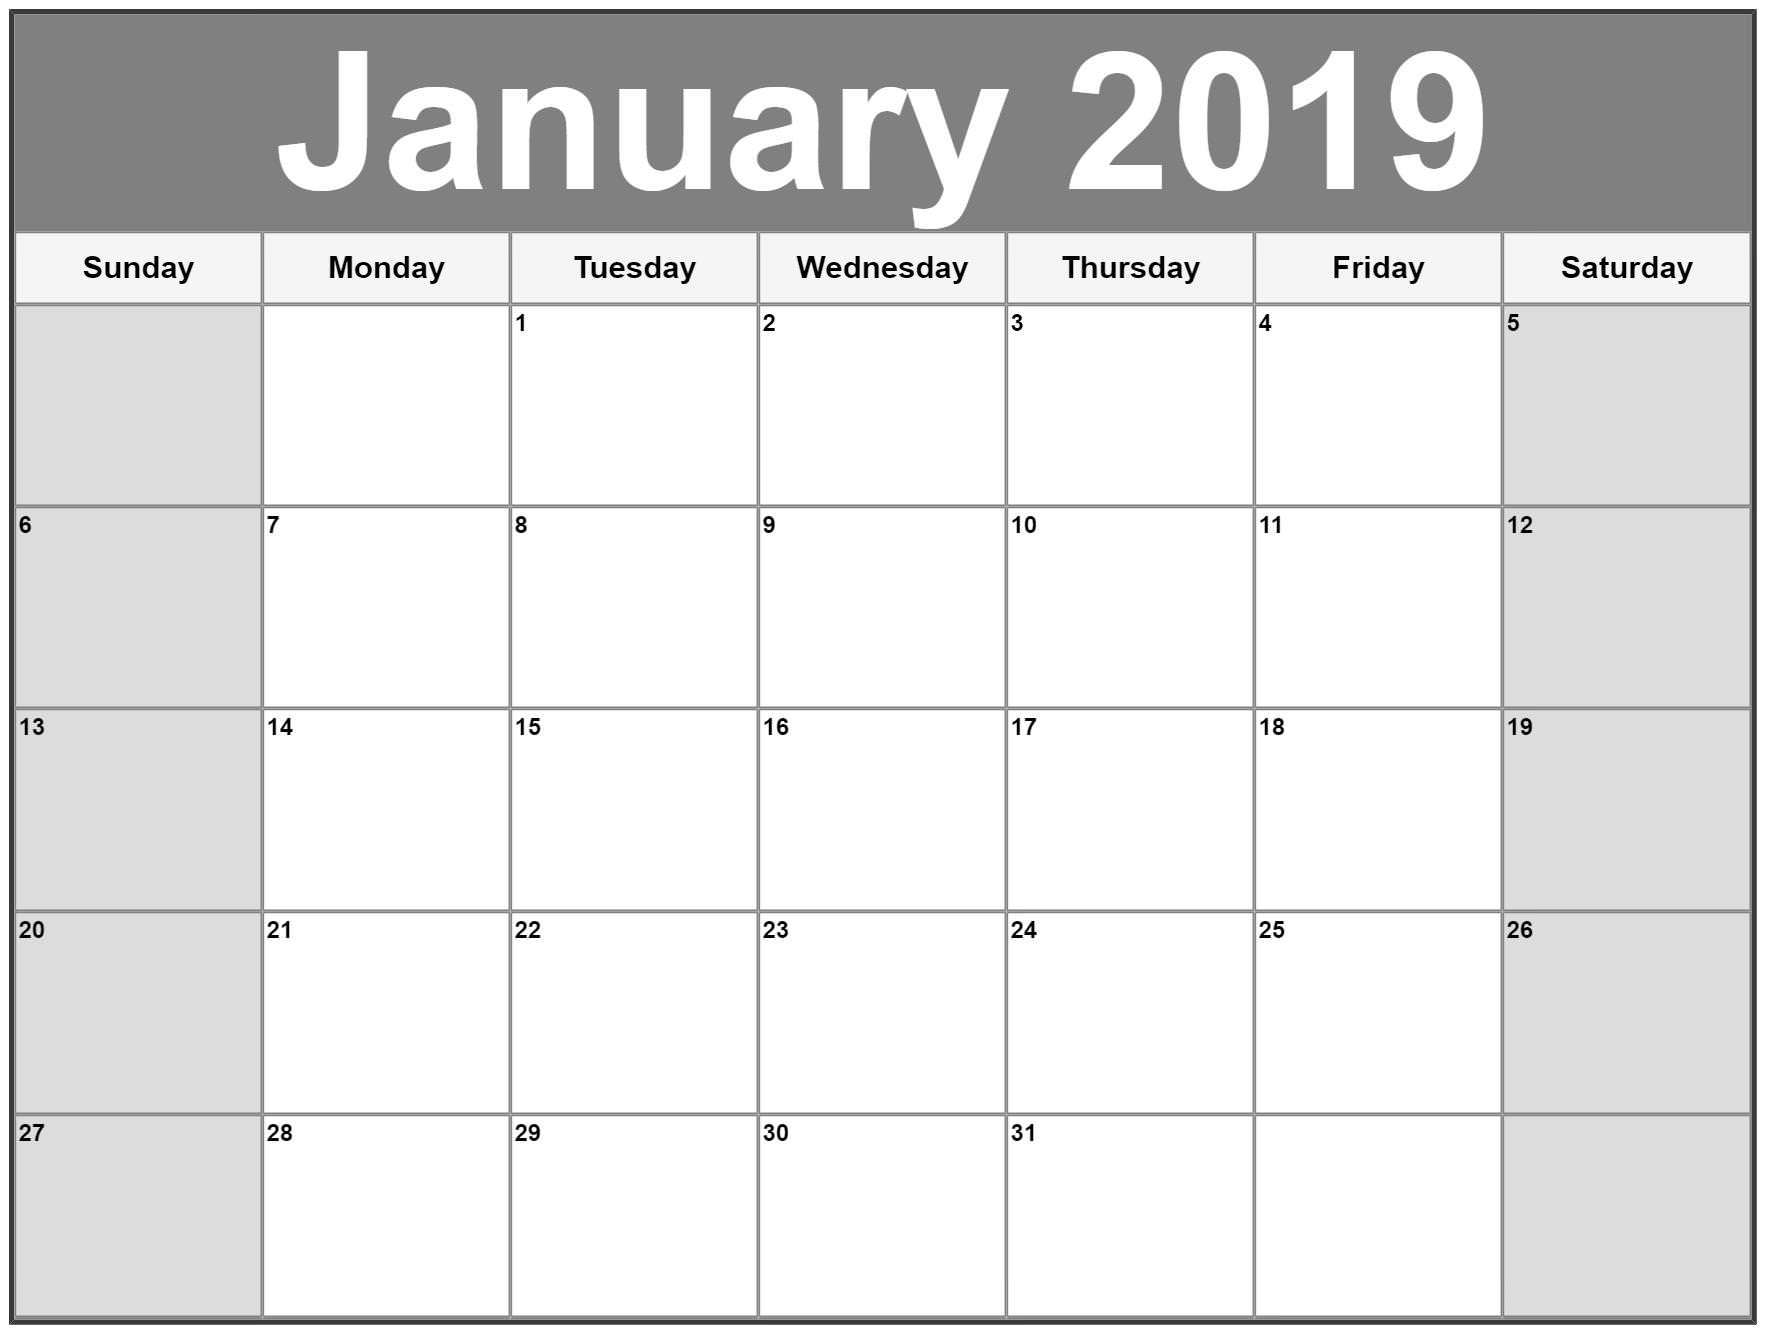 january 2019 islamic calendar january 2019 calendar templates::January 2019 Calendar Canada